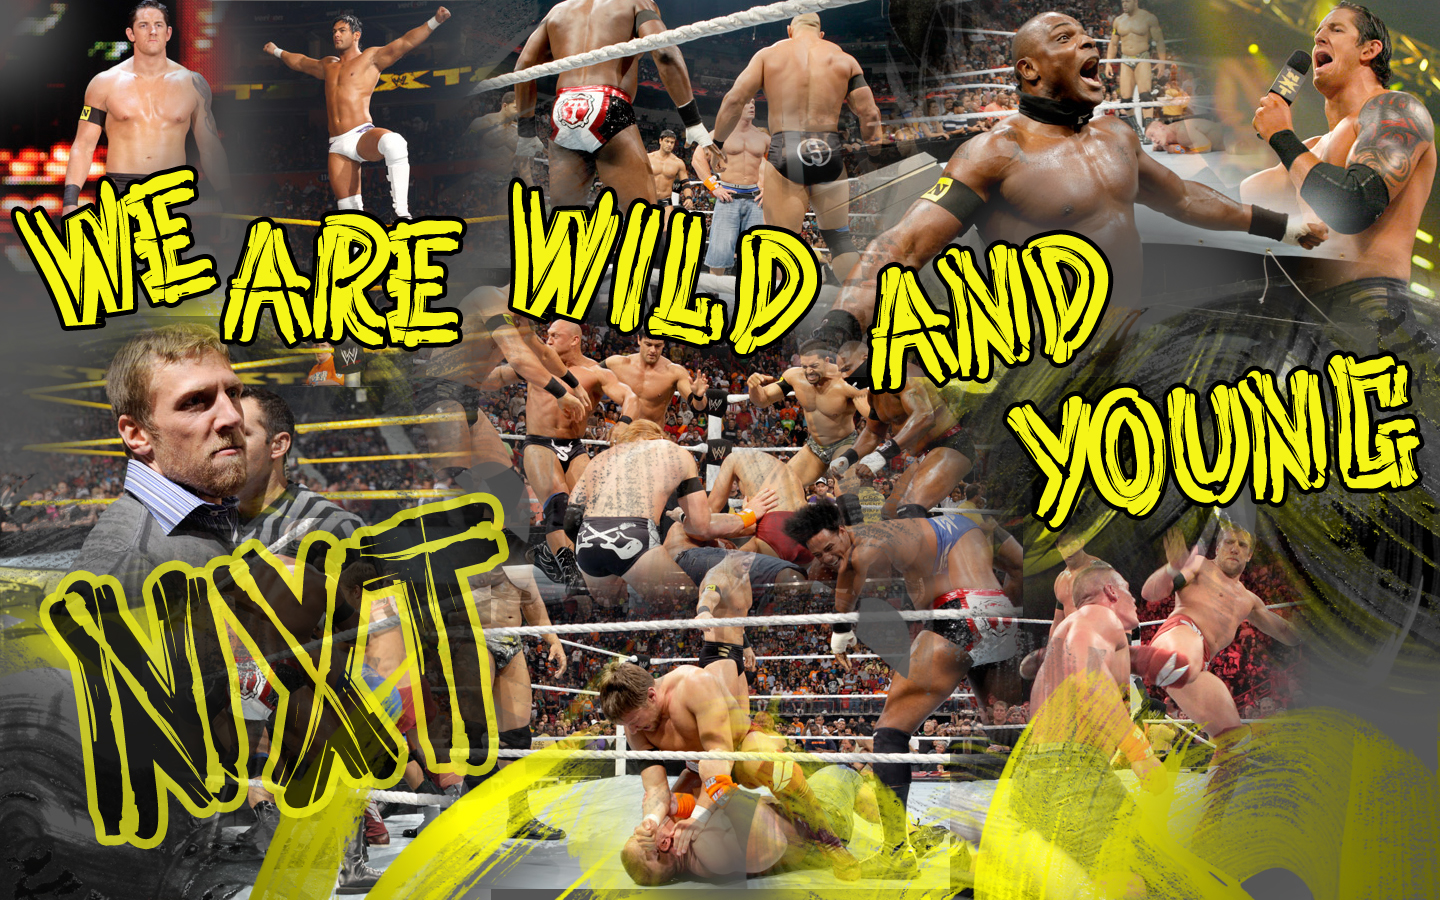 WWE NXT Images Season 1 Wallpaper HD And Background Photos